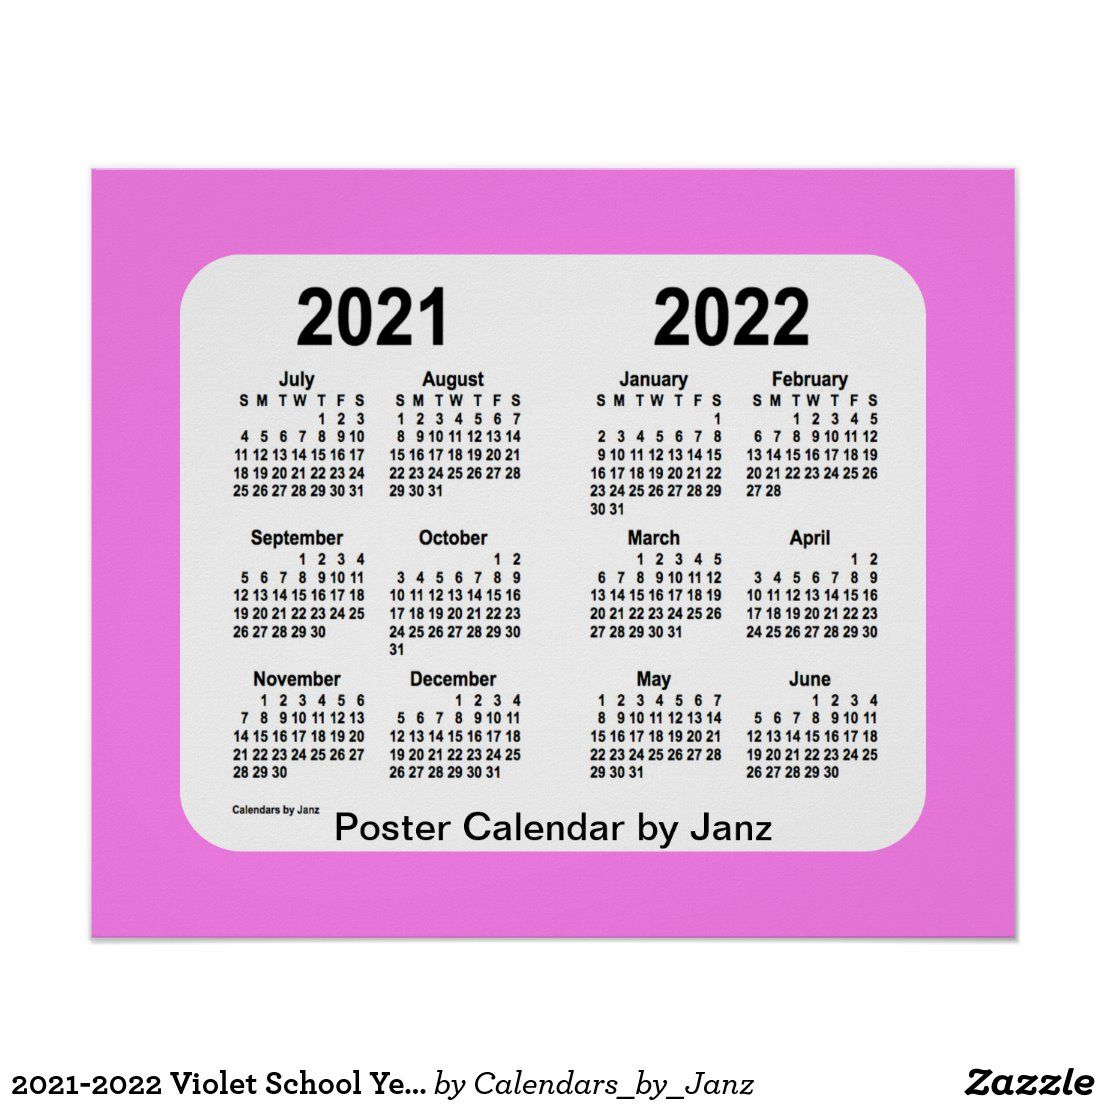 Personalized Calendar 2022.2021 2022 Violet School Year Calendar By Janz Poster Zazzle Com Save The Date Posters School Calendar Calendar Design